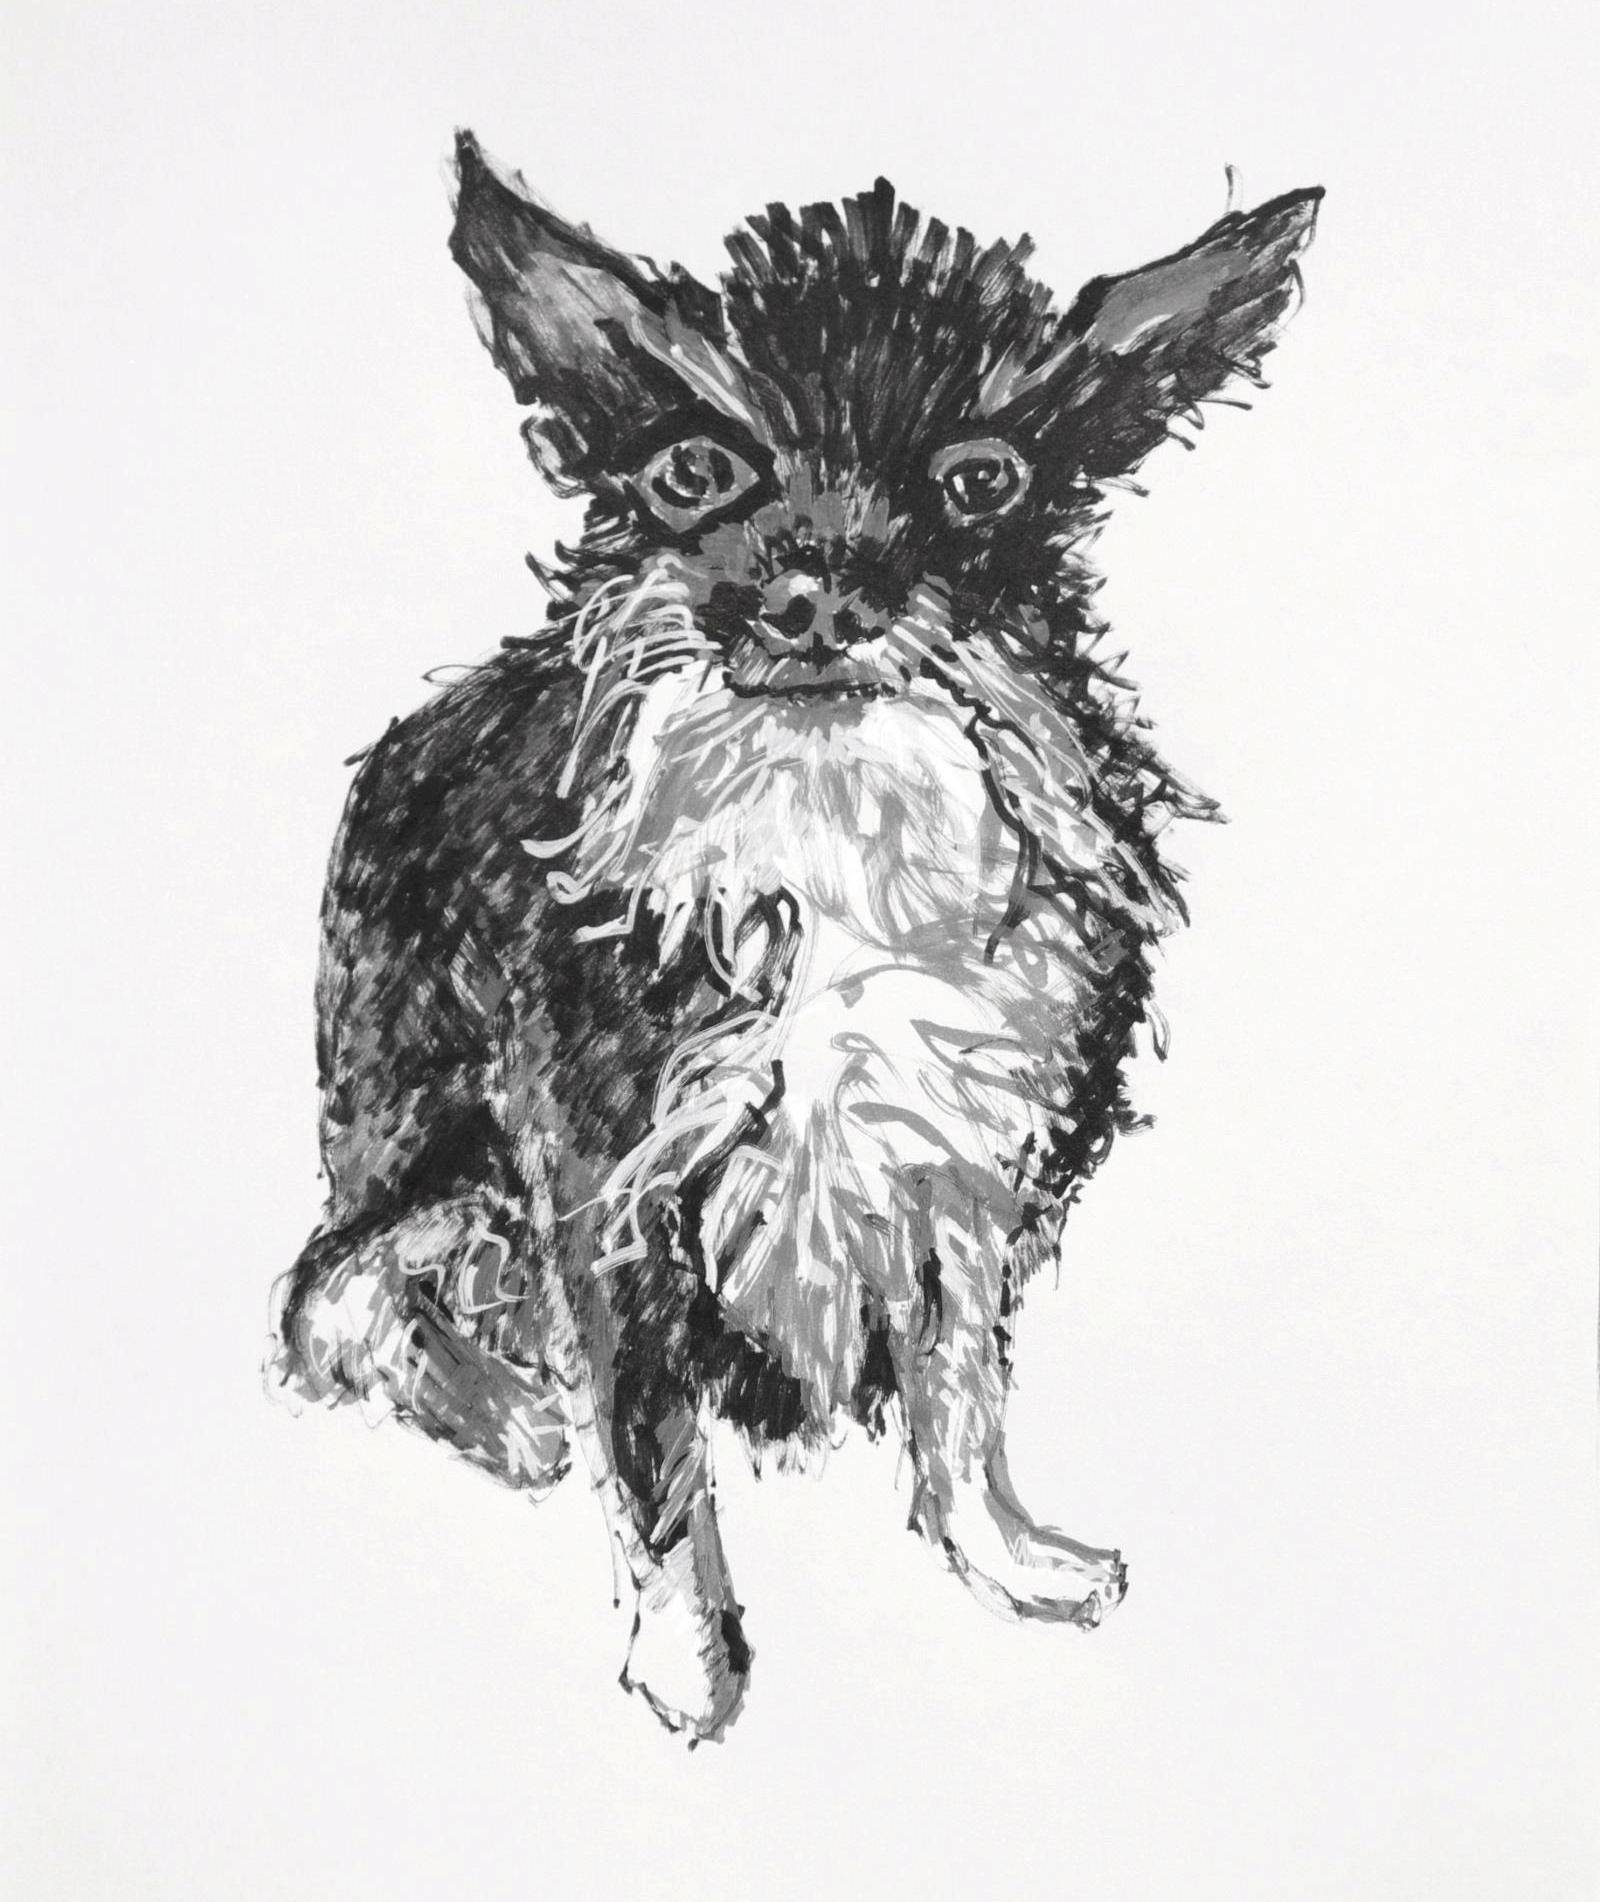 Harley 1, 2018, acrylic paint pens on paper, Elizabeth Lisa Petrulis. Portrait drawing of a scruffy bearded chihuahua with tuxedo markings.